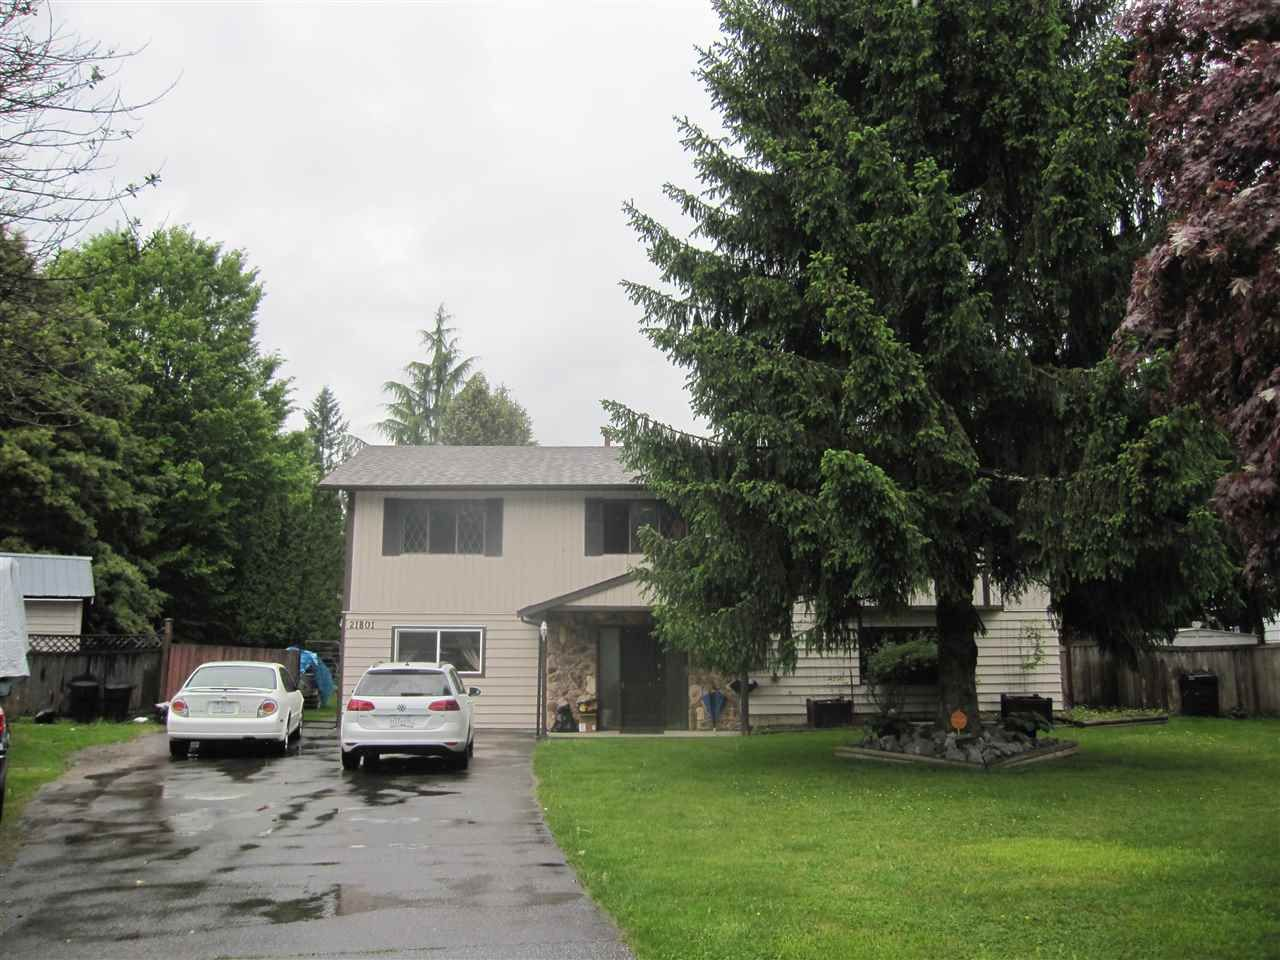 Main Photo: 21801 DOVER Road in Maple Ridge: West Central House for sale : MLS®# R2369715